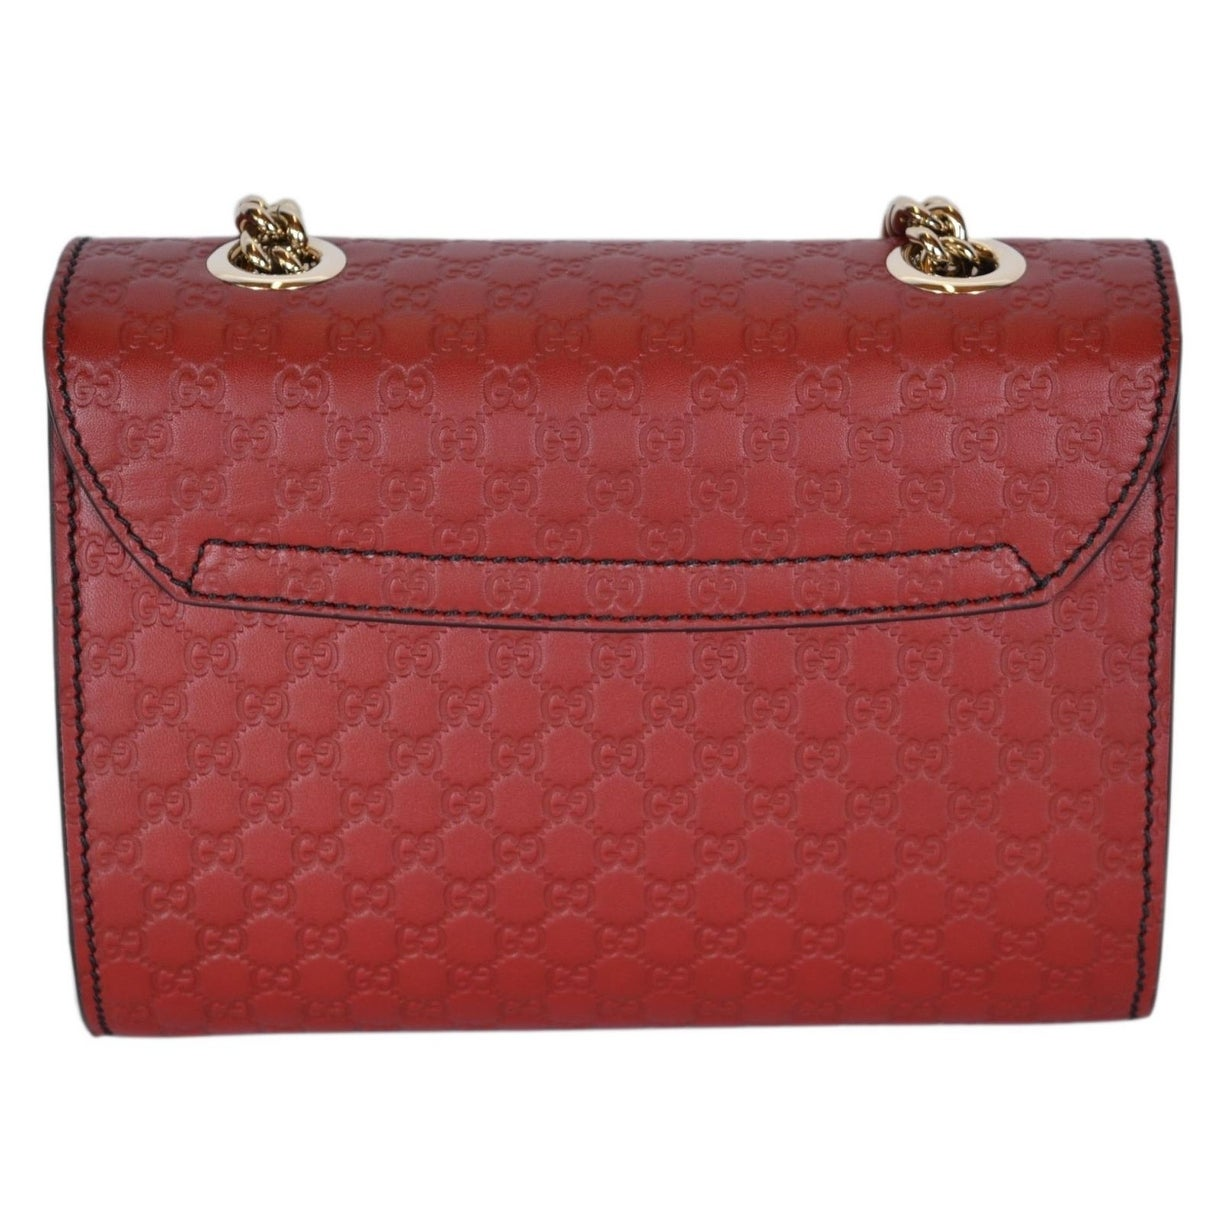 f52227bcc04b Shop Gucci 449636 Red Micro GG Guccissima Leather MINI Emily Crossbody Purse  - Free Shipping Today - Overstock - 20919619